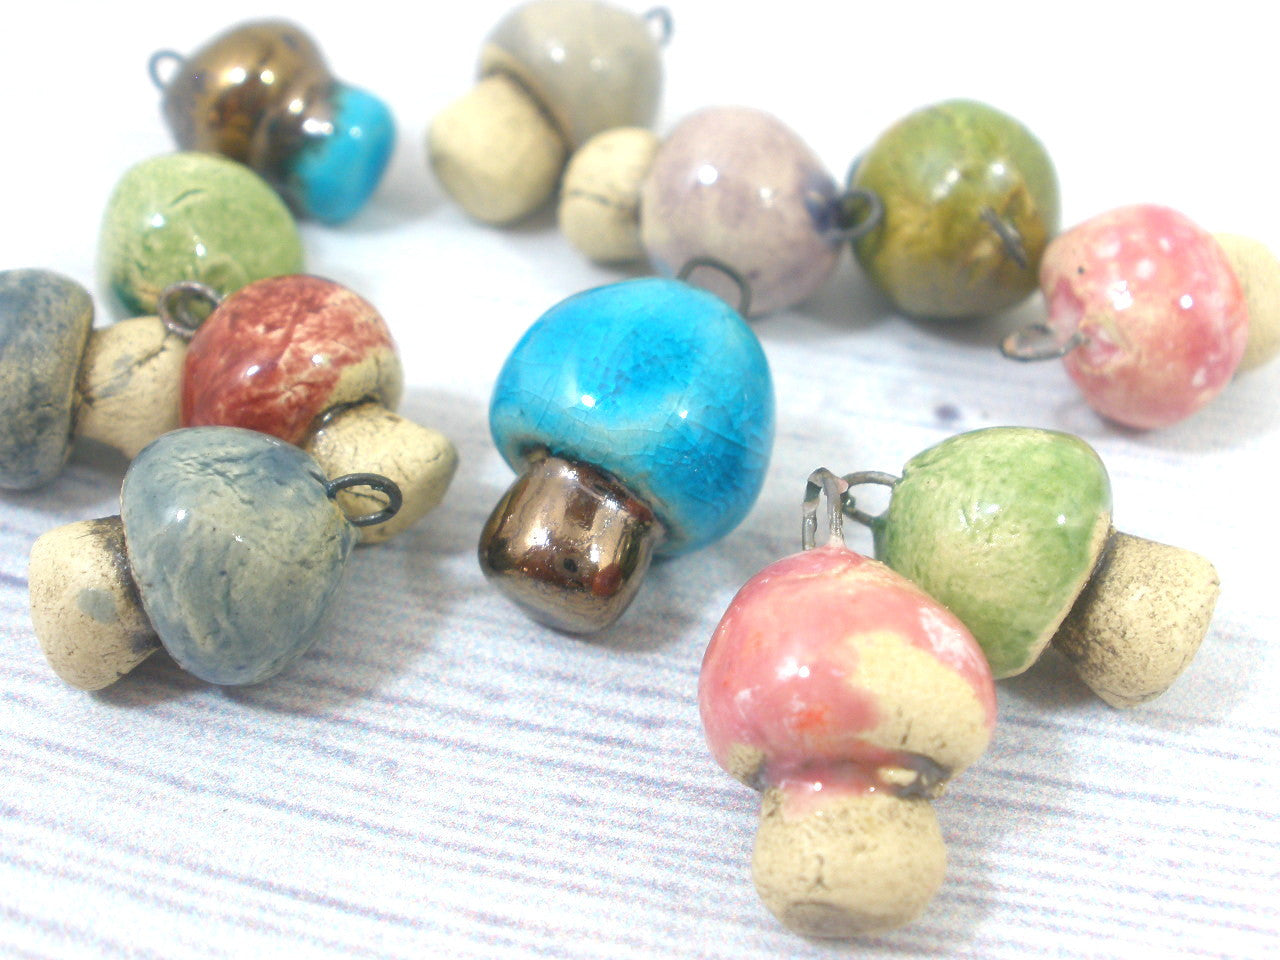 Miniature Mushroom Charm In A Color Of Your Choice